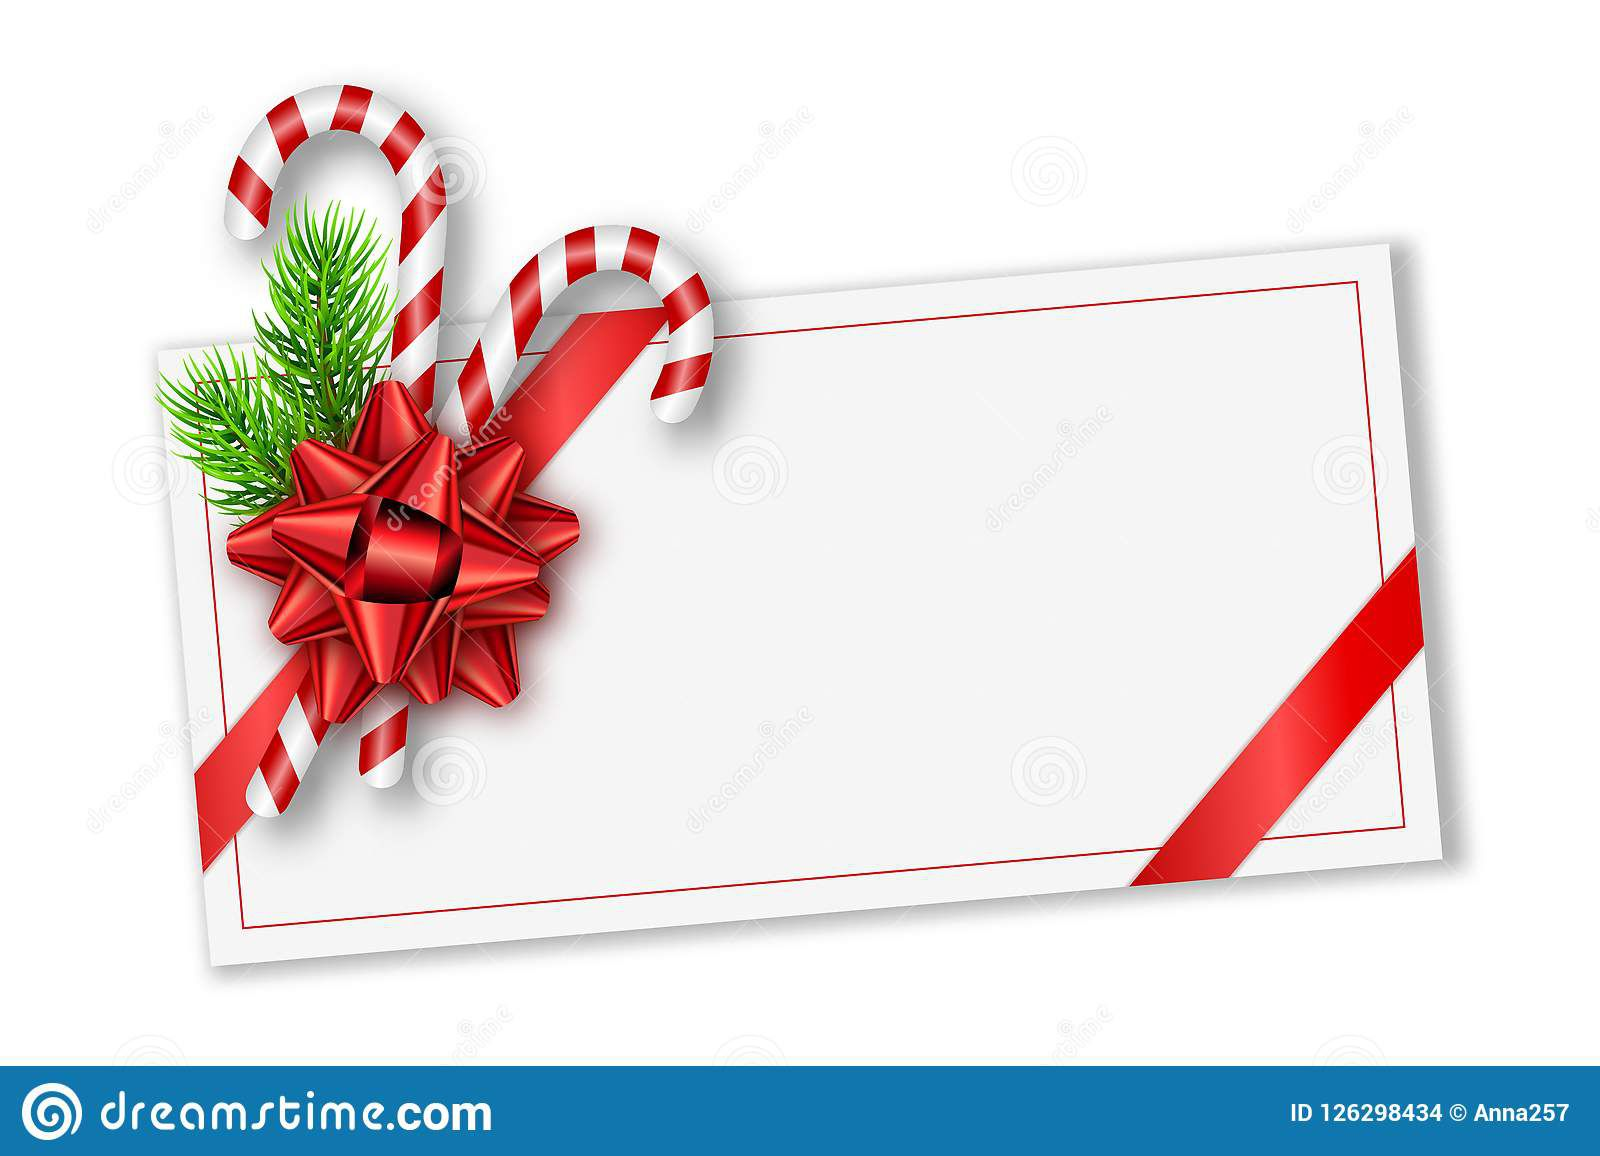 008 Unusual Template For Christma Gift Card Design  Word Certificate SampleFull